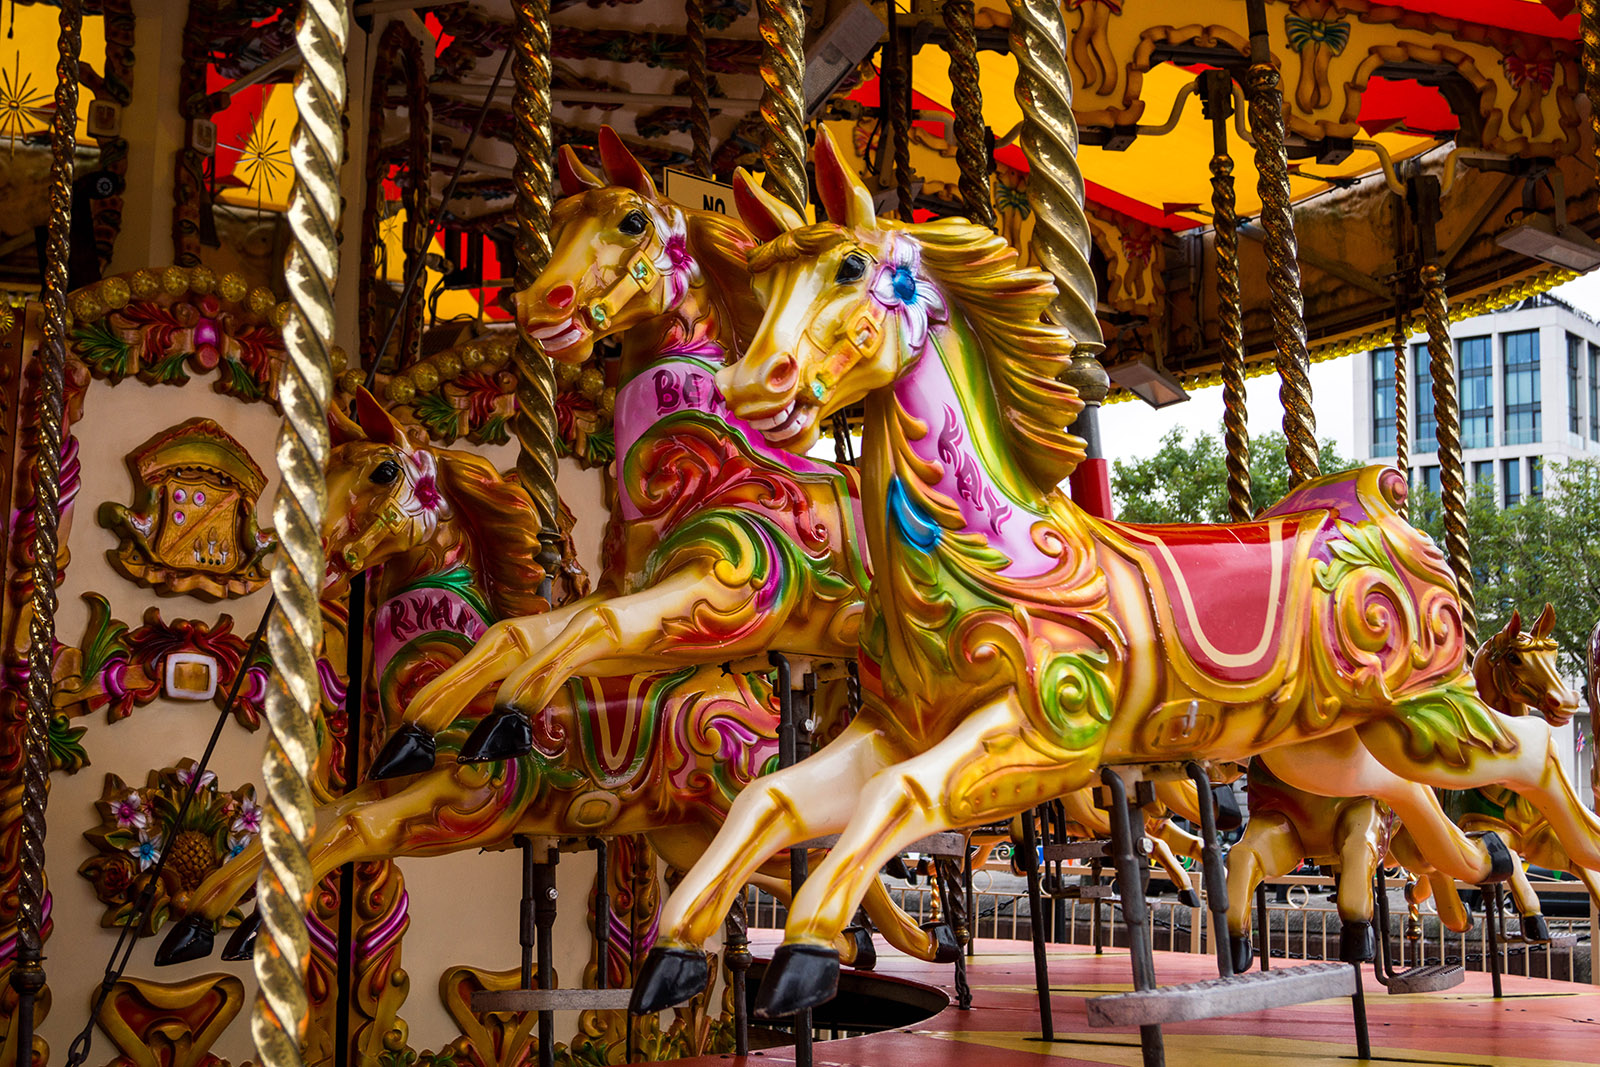 Carousel copyright @ Ashley Bremer